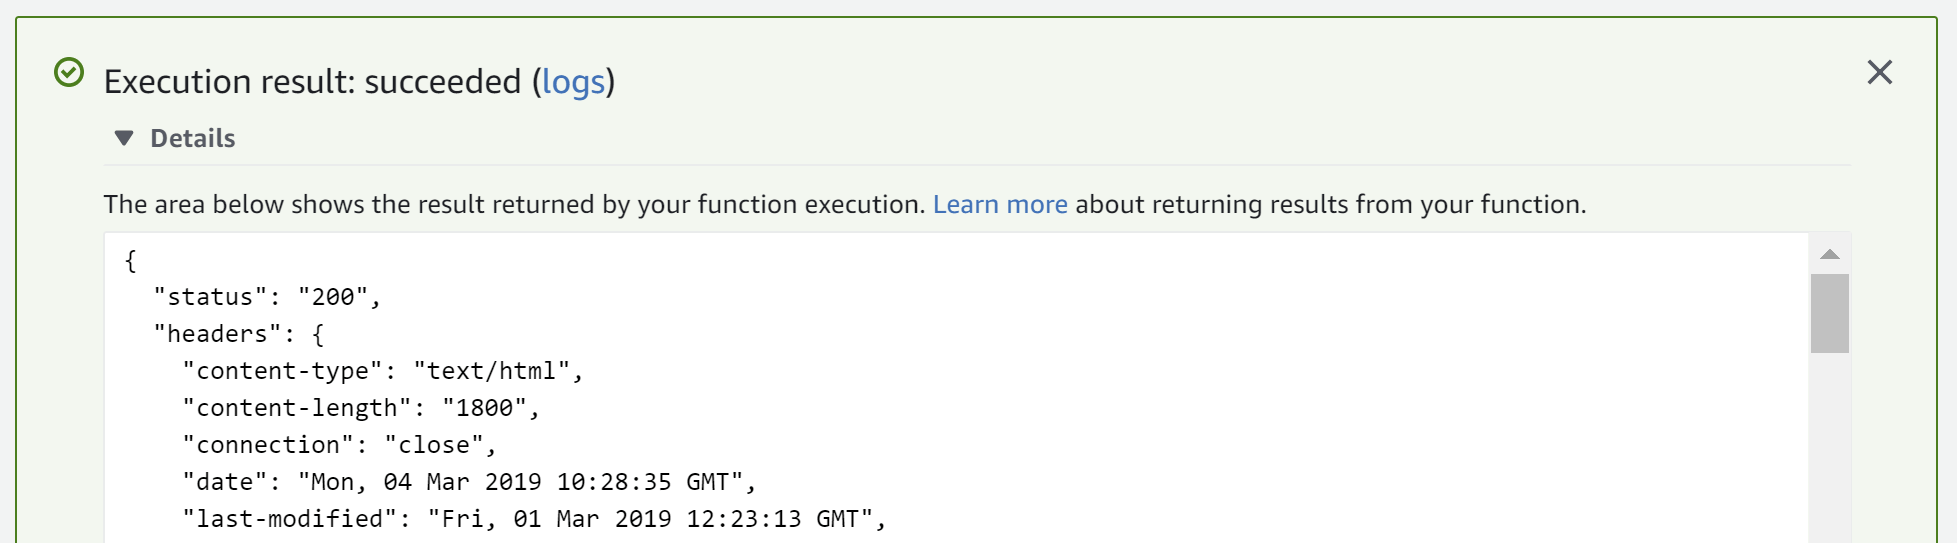 Function test execution successsful